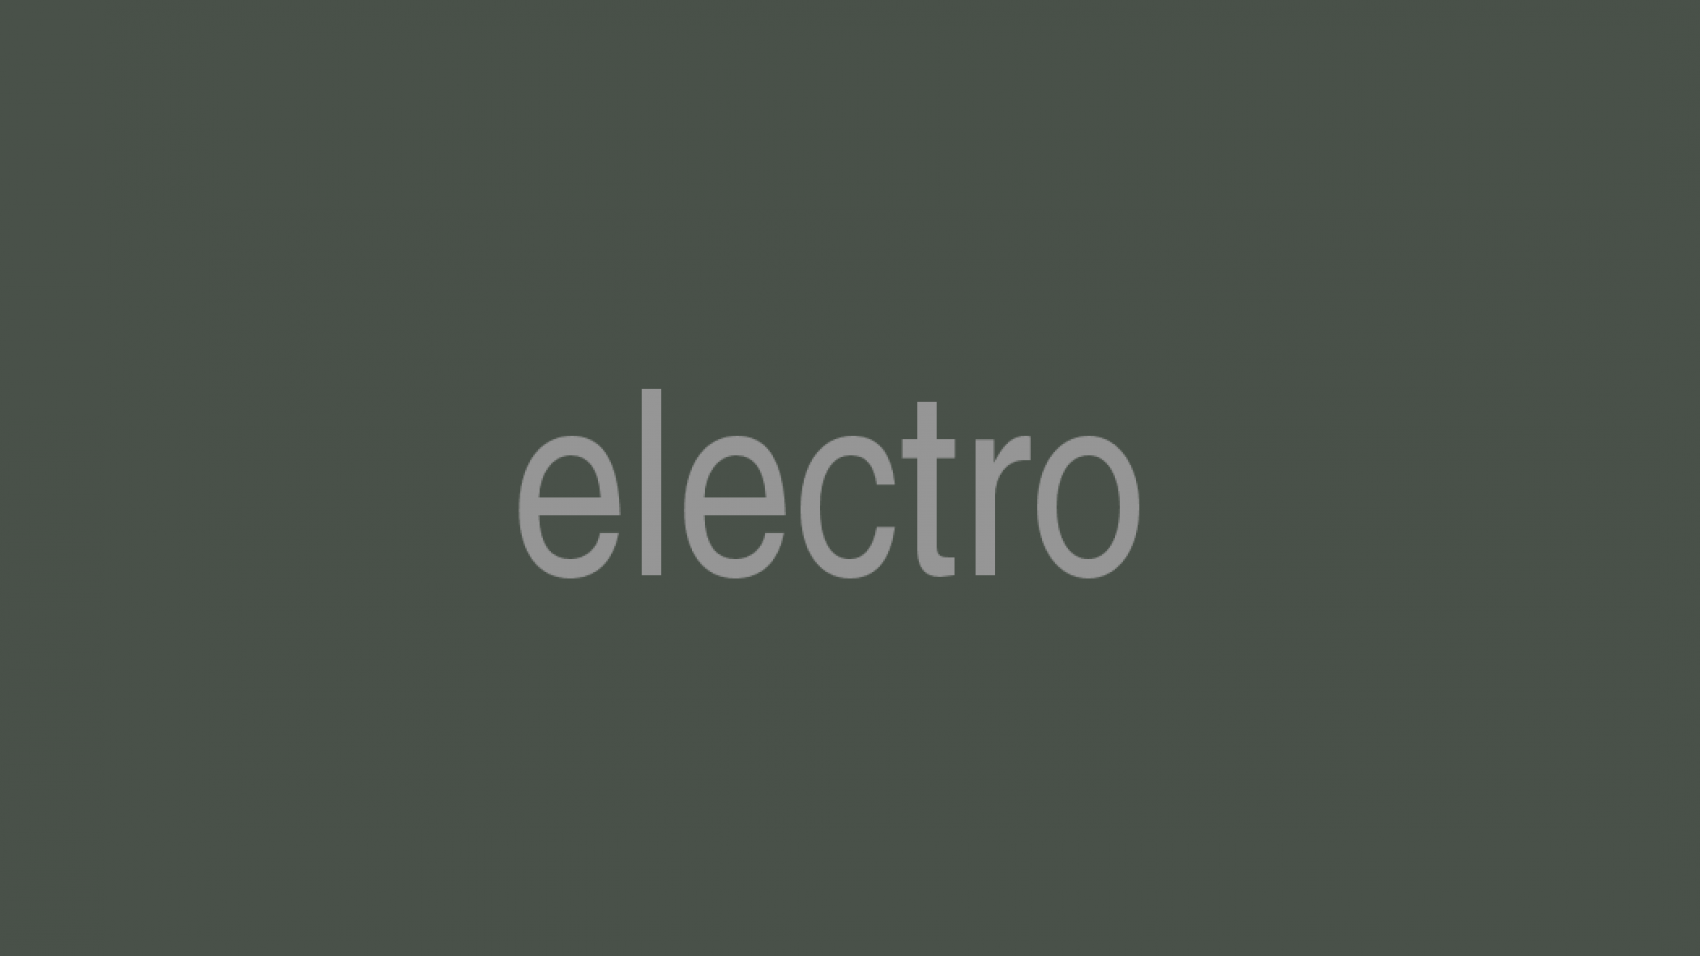 electro-placeholder-blog